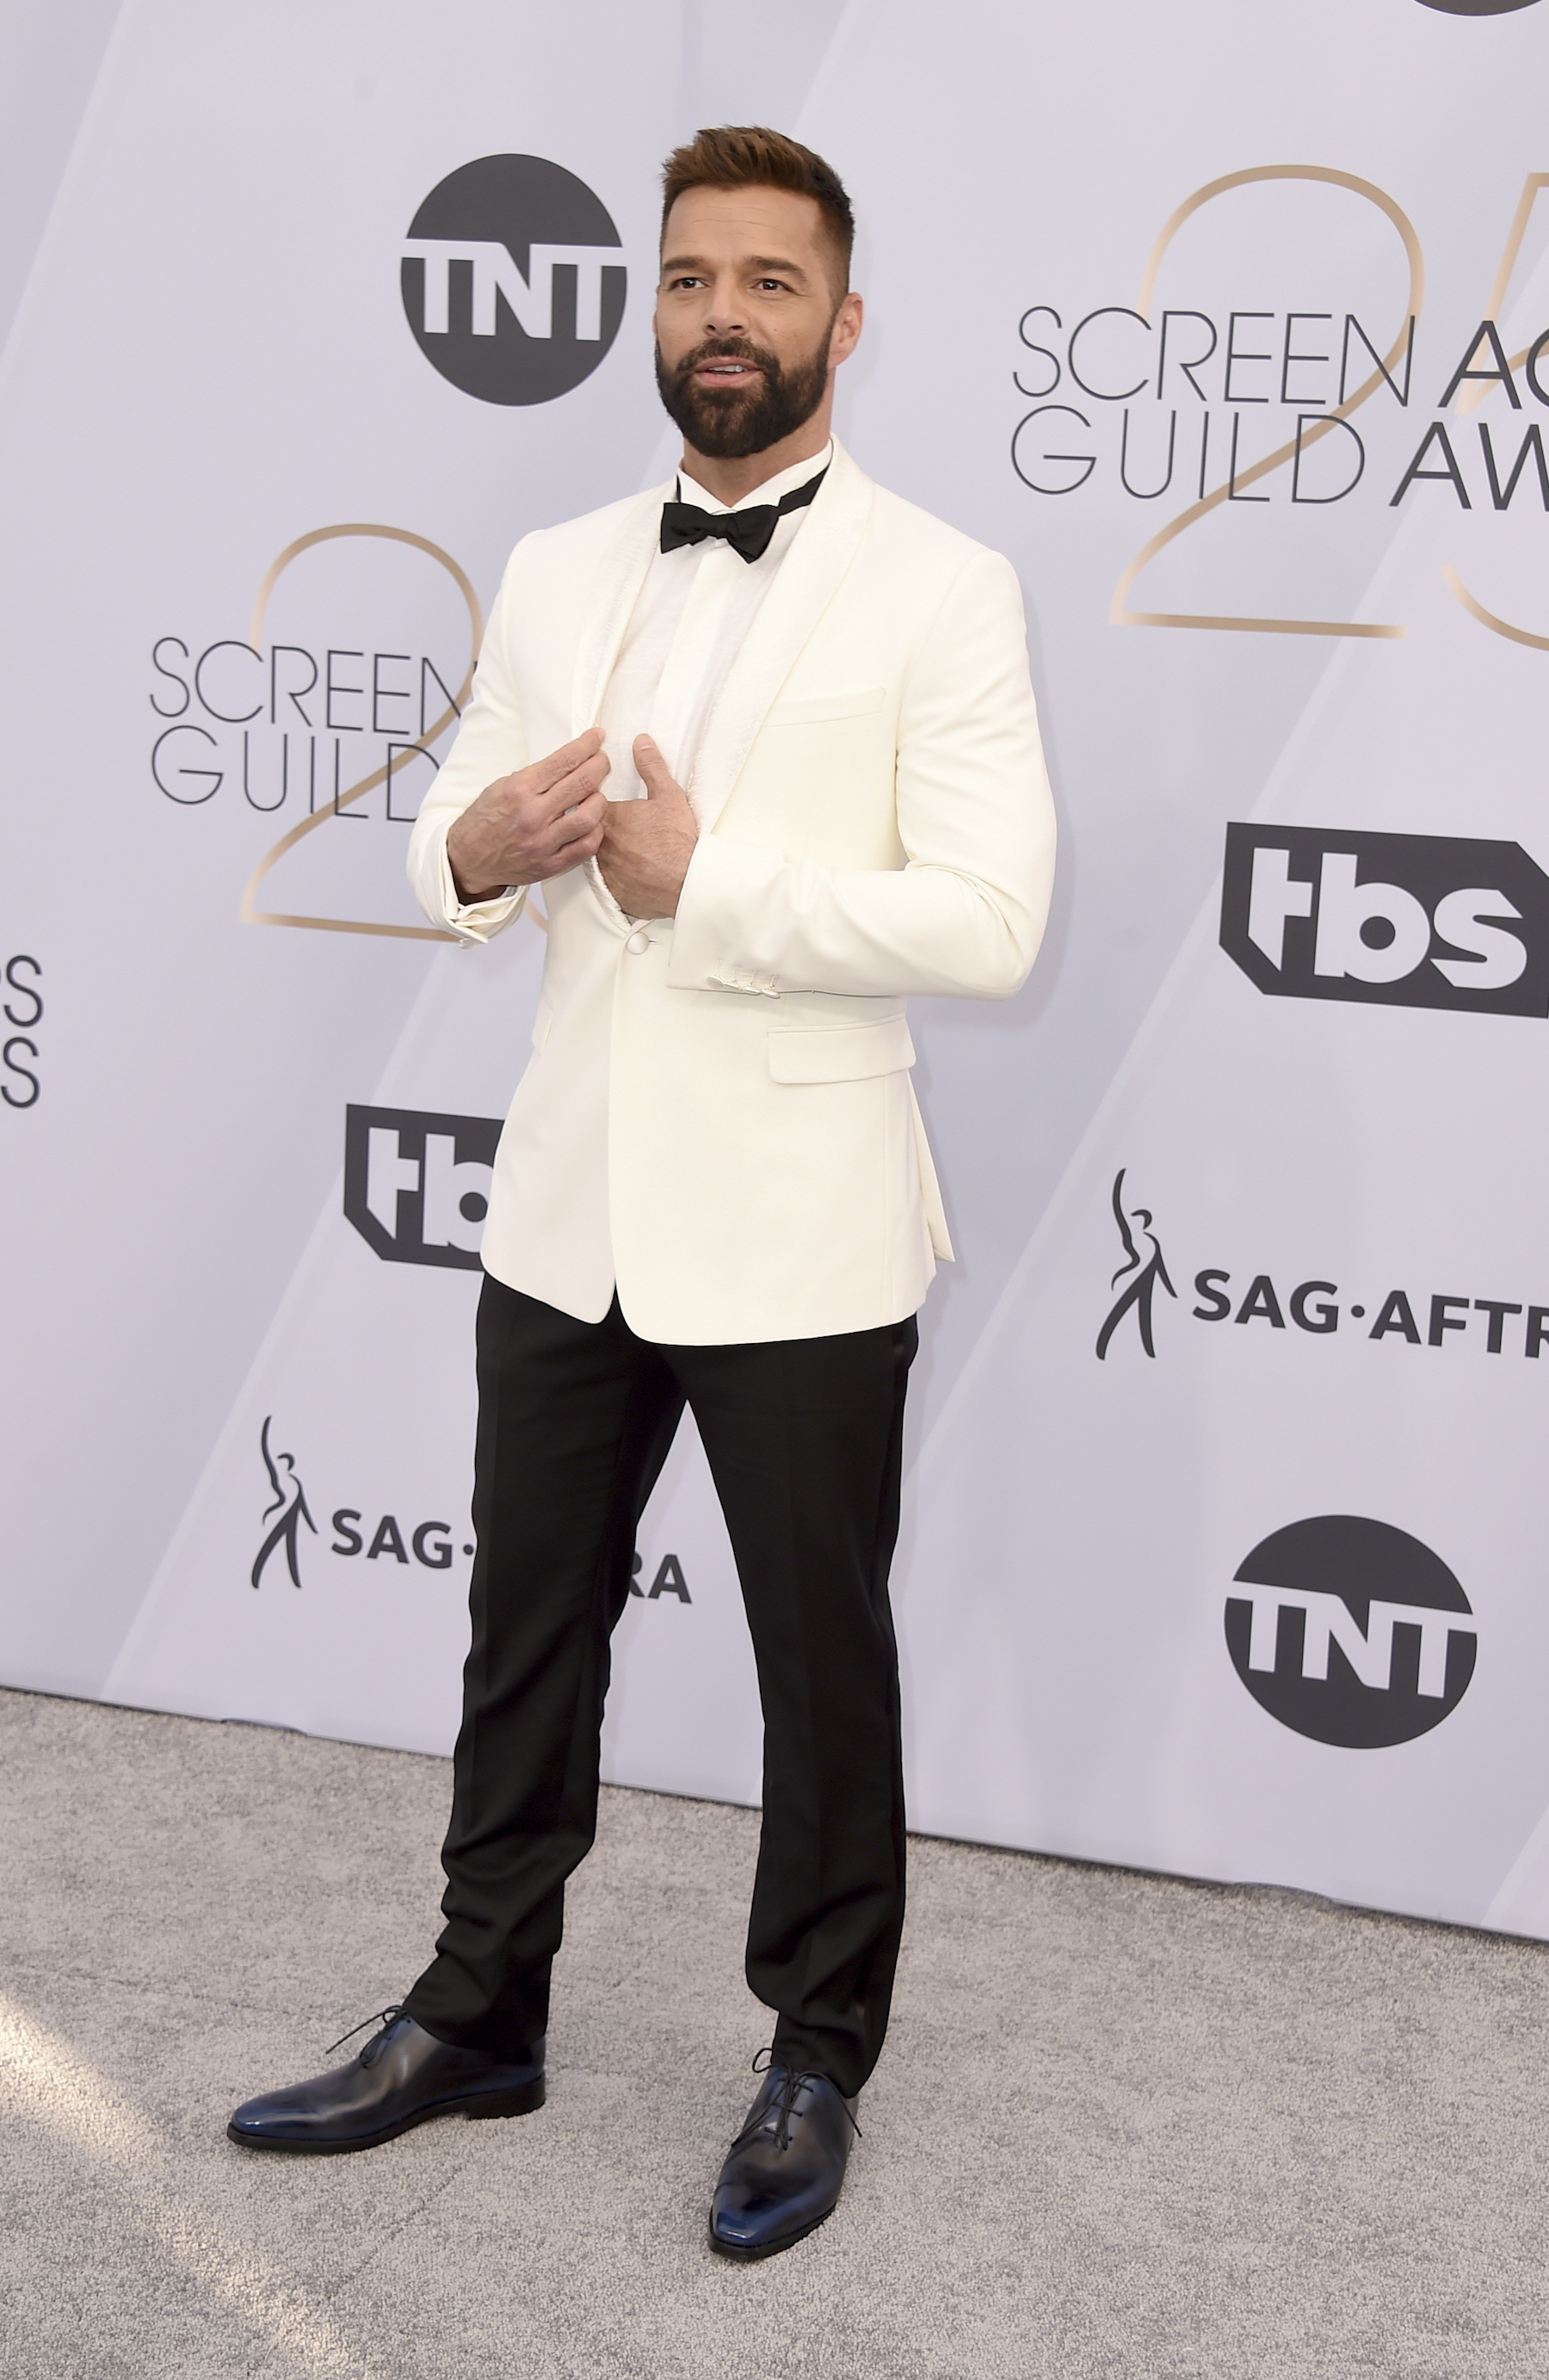 <div class='meta'><div class='origin-logo' data-origin='AP'></div><span class='caption-text' data-credit='Jordan Strauss/Invision/AP'>Ricky Martin arrives at the 25th annual Screen Actors Guild Awards at the Shrine Auditorium & Expo Hall on Sunday, Jan. 27, 2019, in Los Angeles.</span></div>